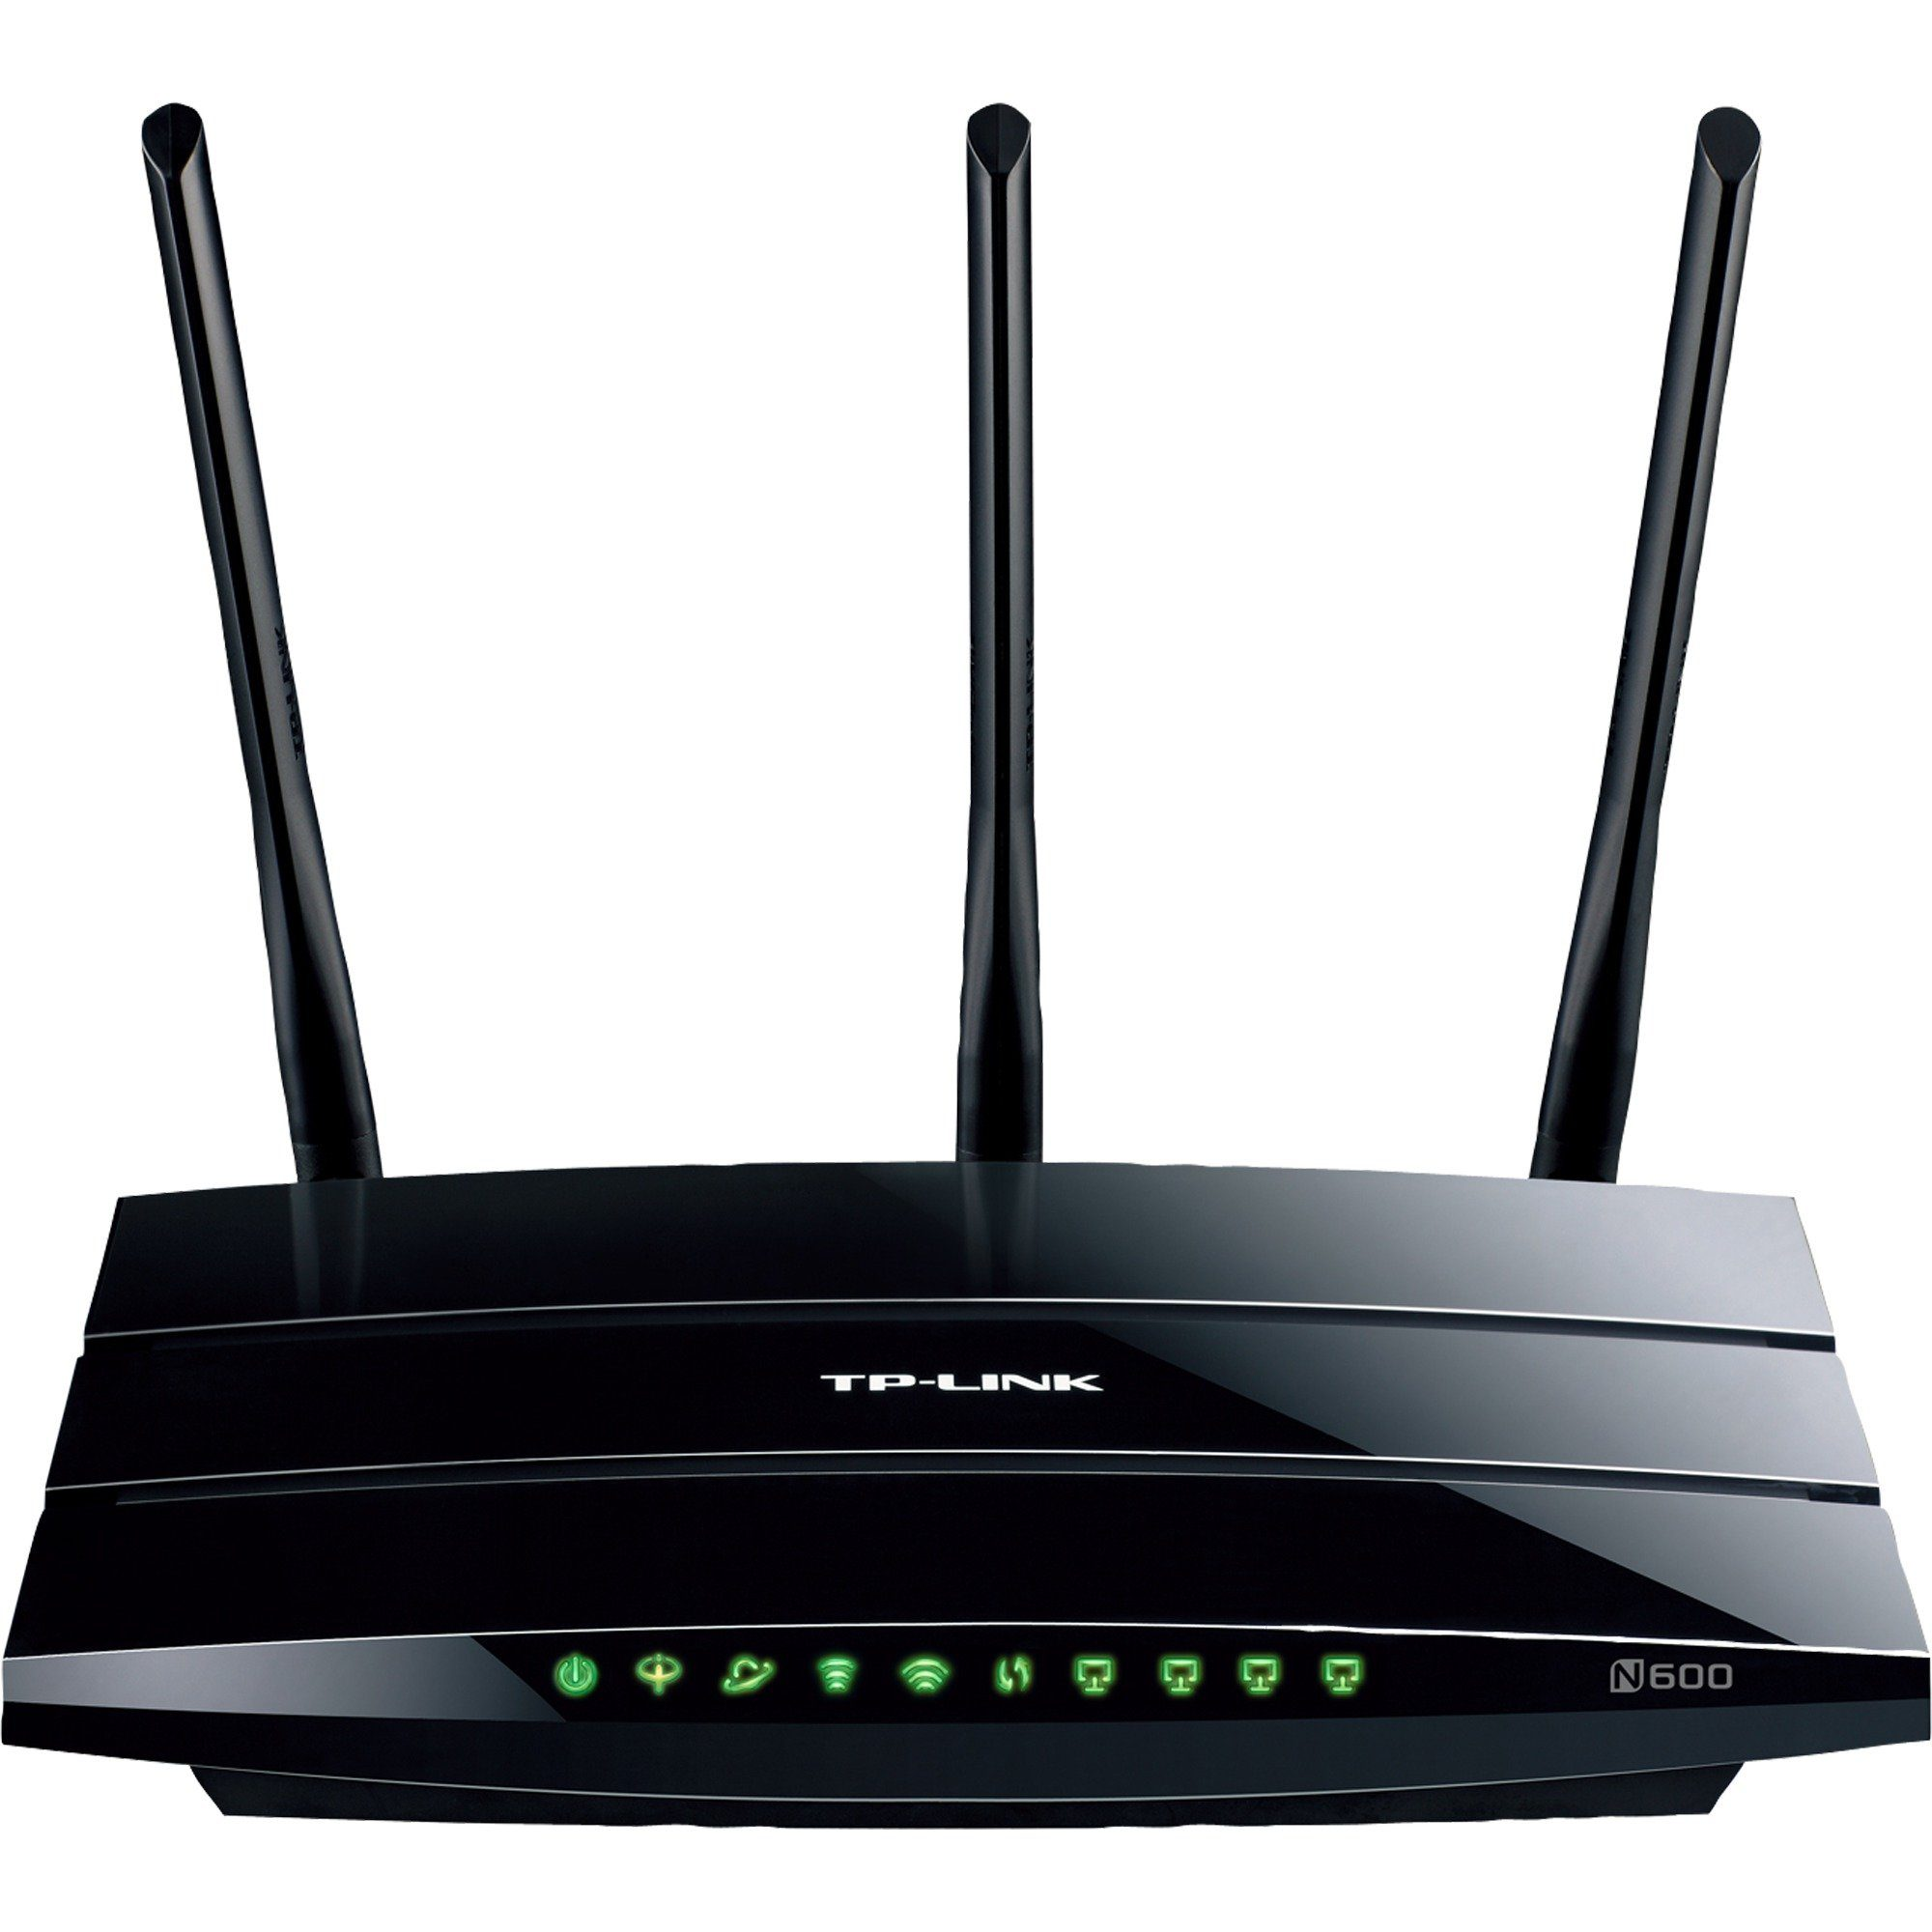 TP-LINK Router »TD-W9980B«